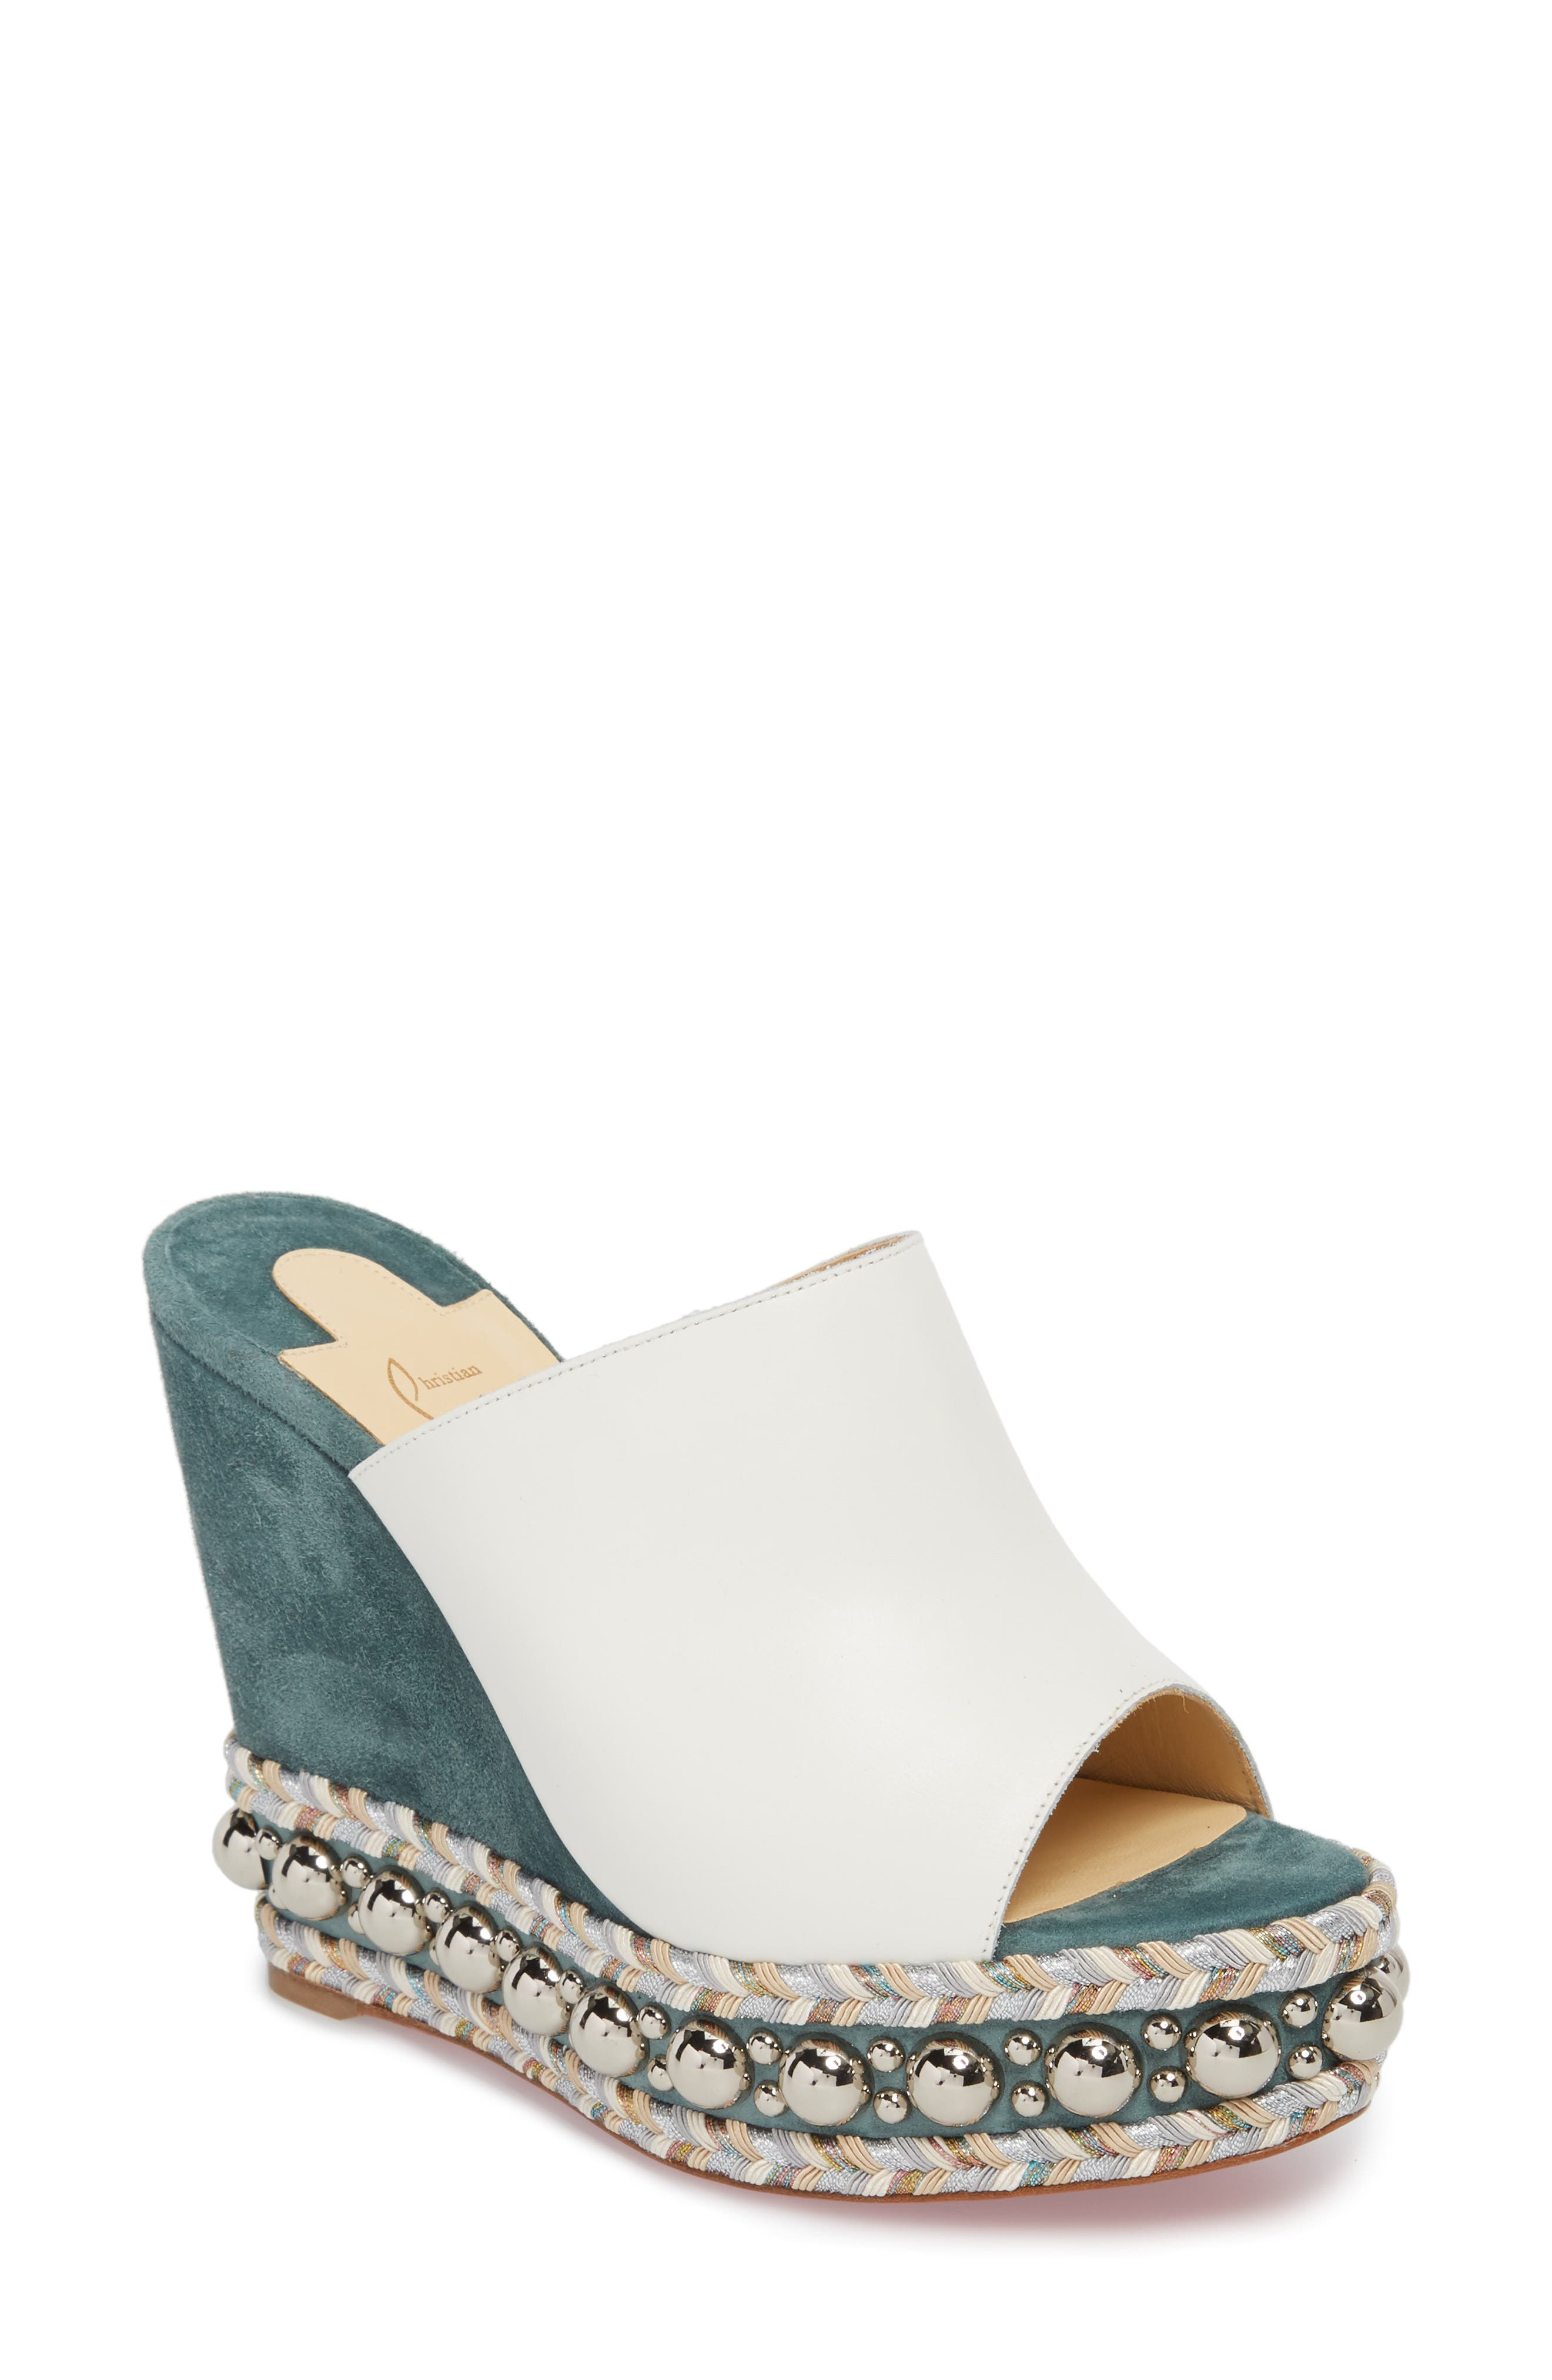 Janibasse Embellished Wedge Mule,                         Main,                         color, 710